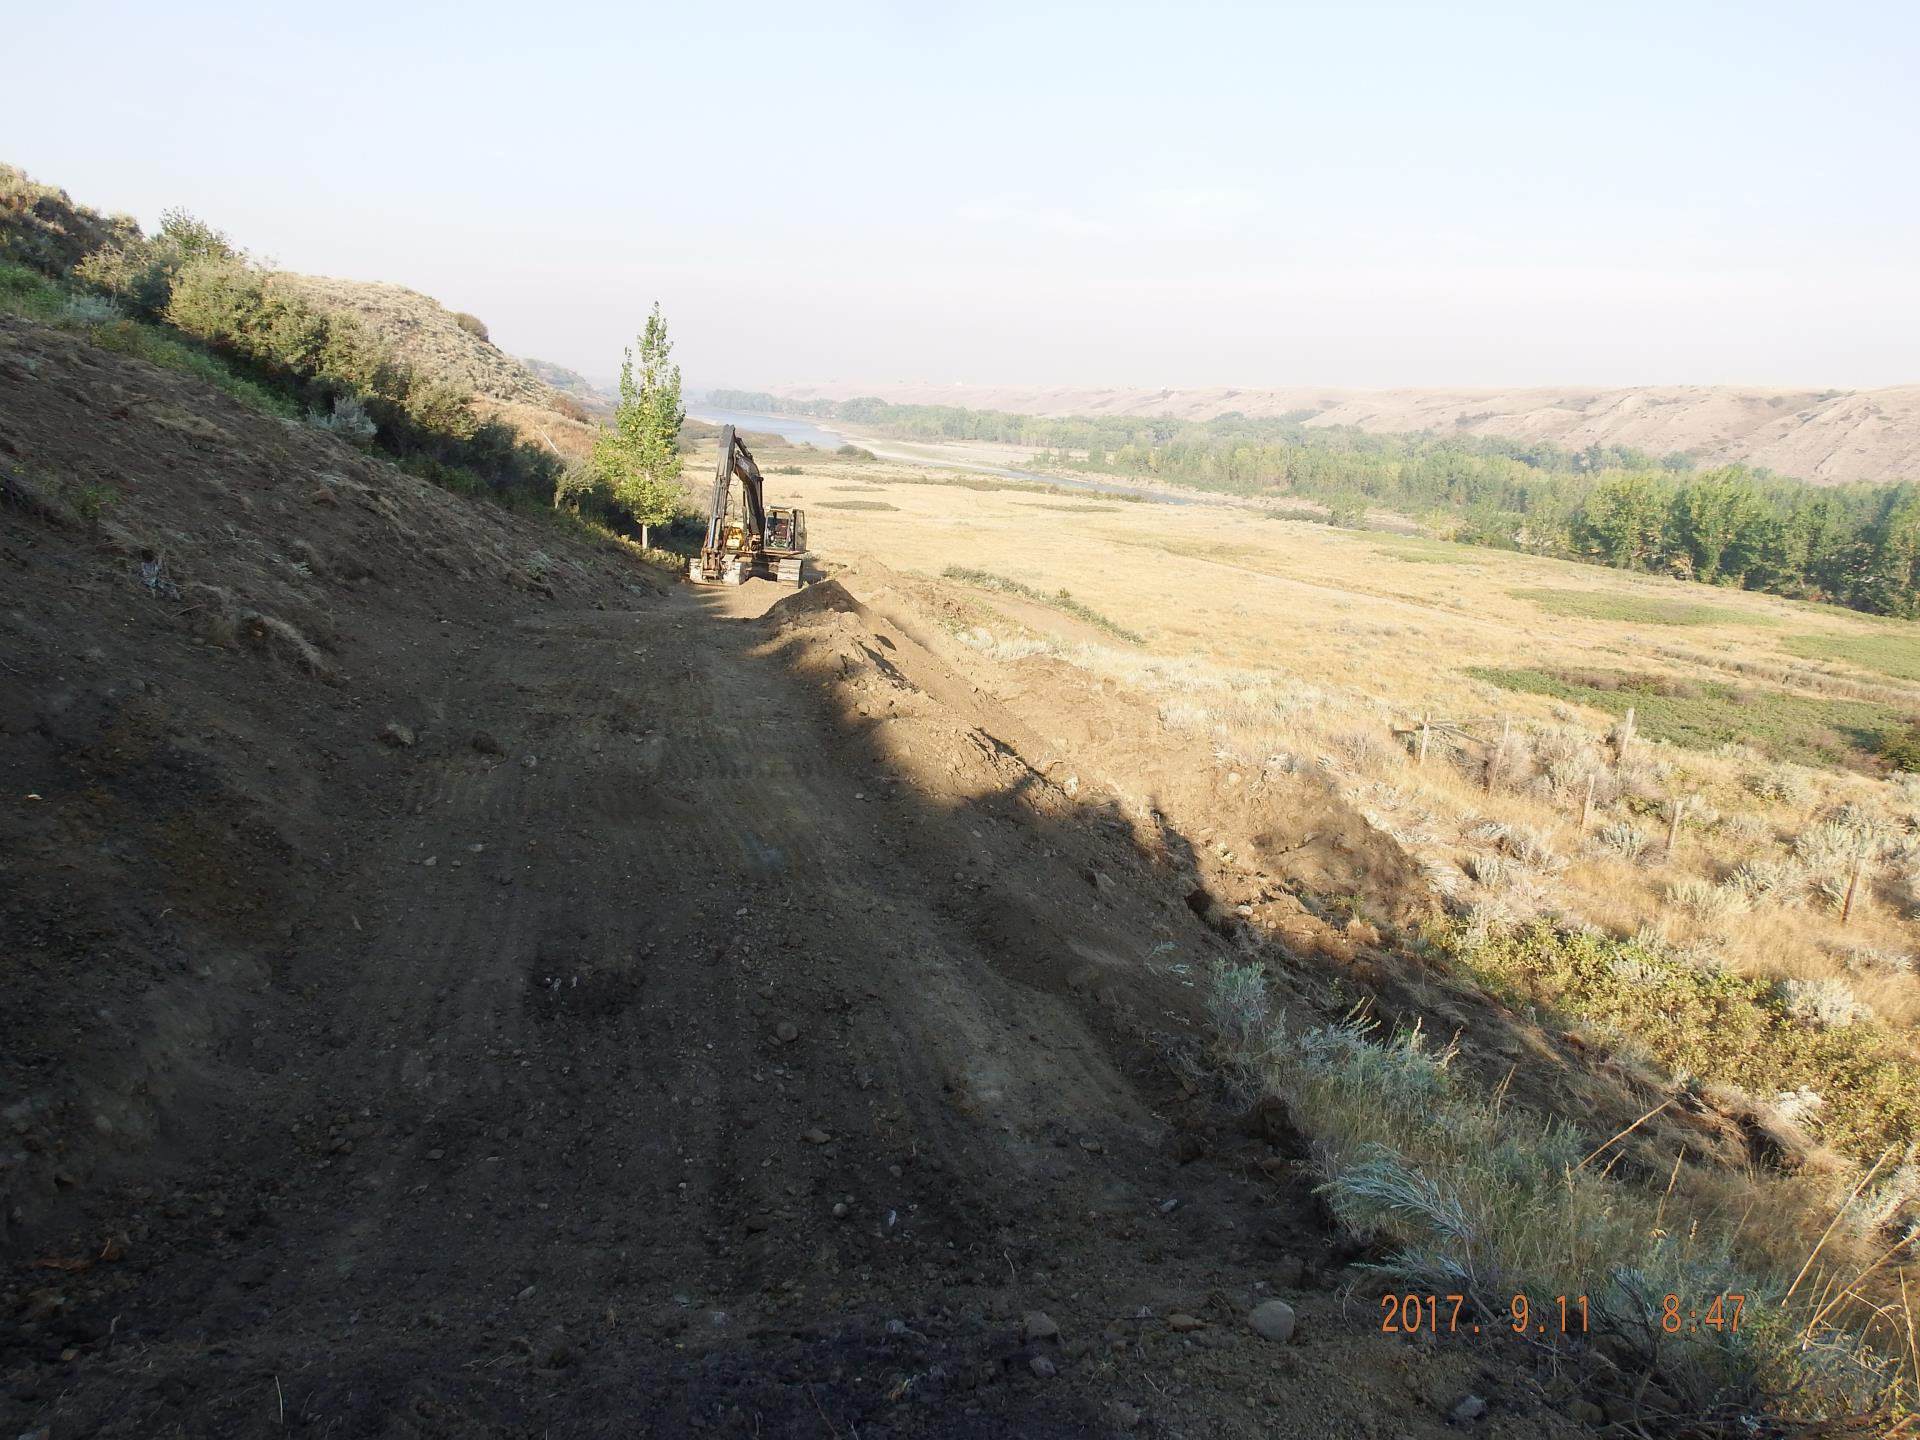 Trail Construction - September 2017